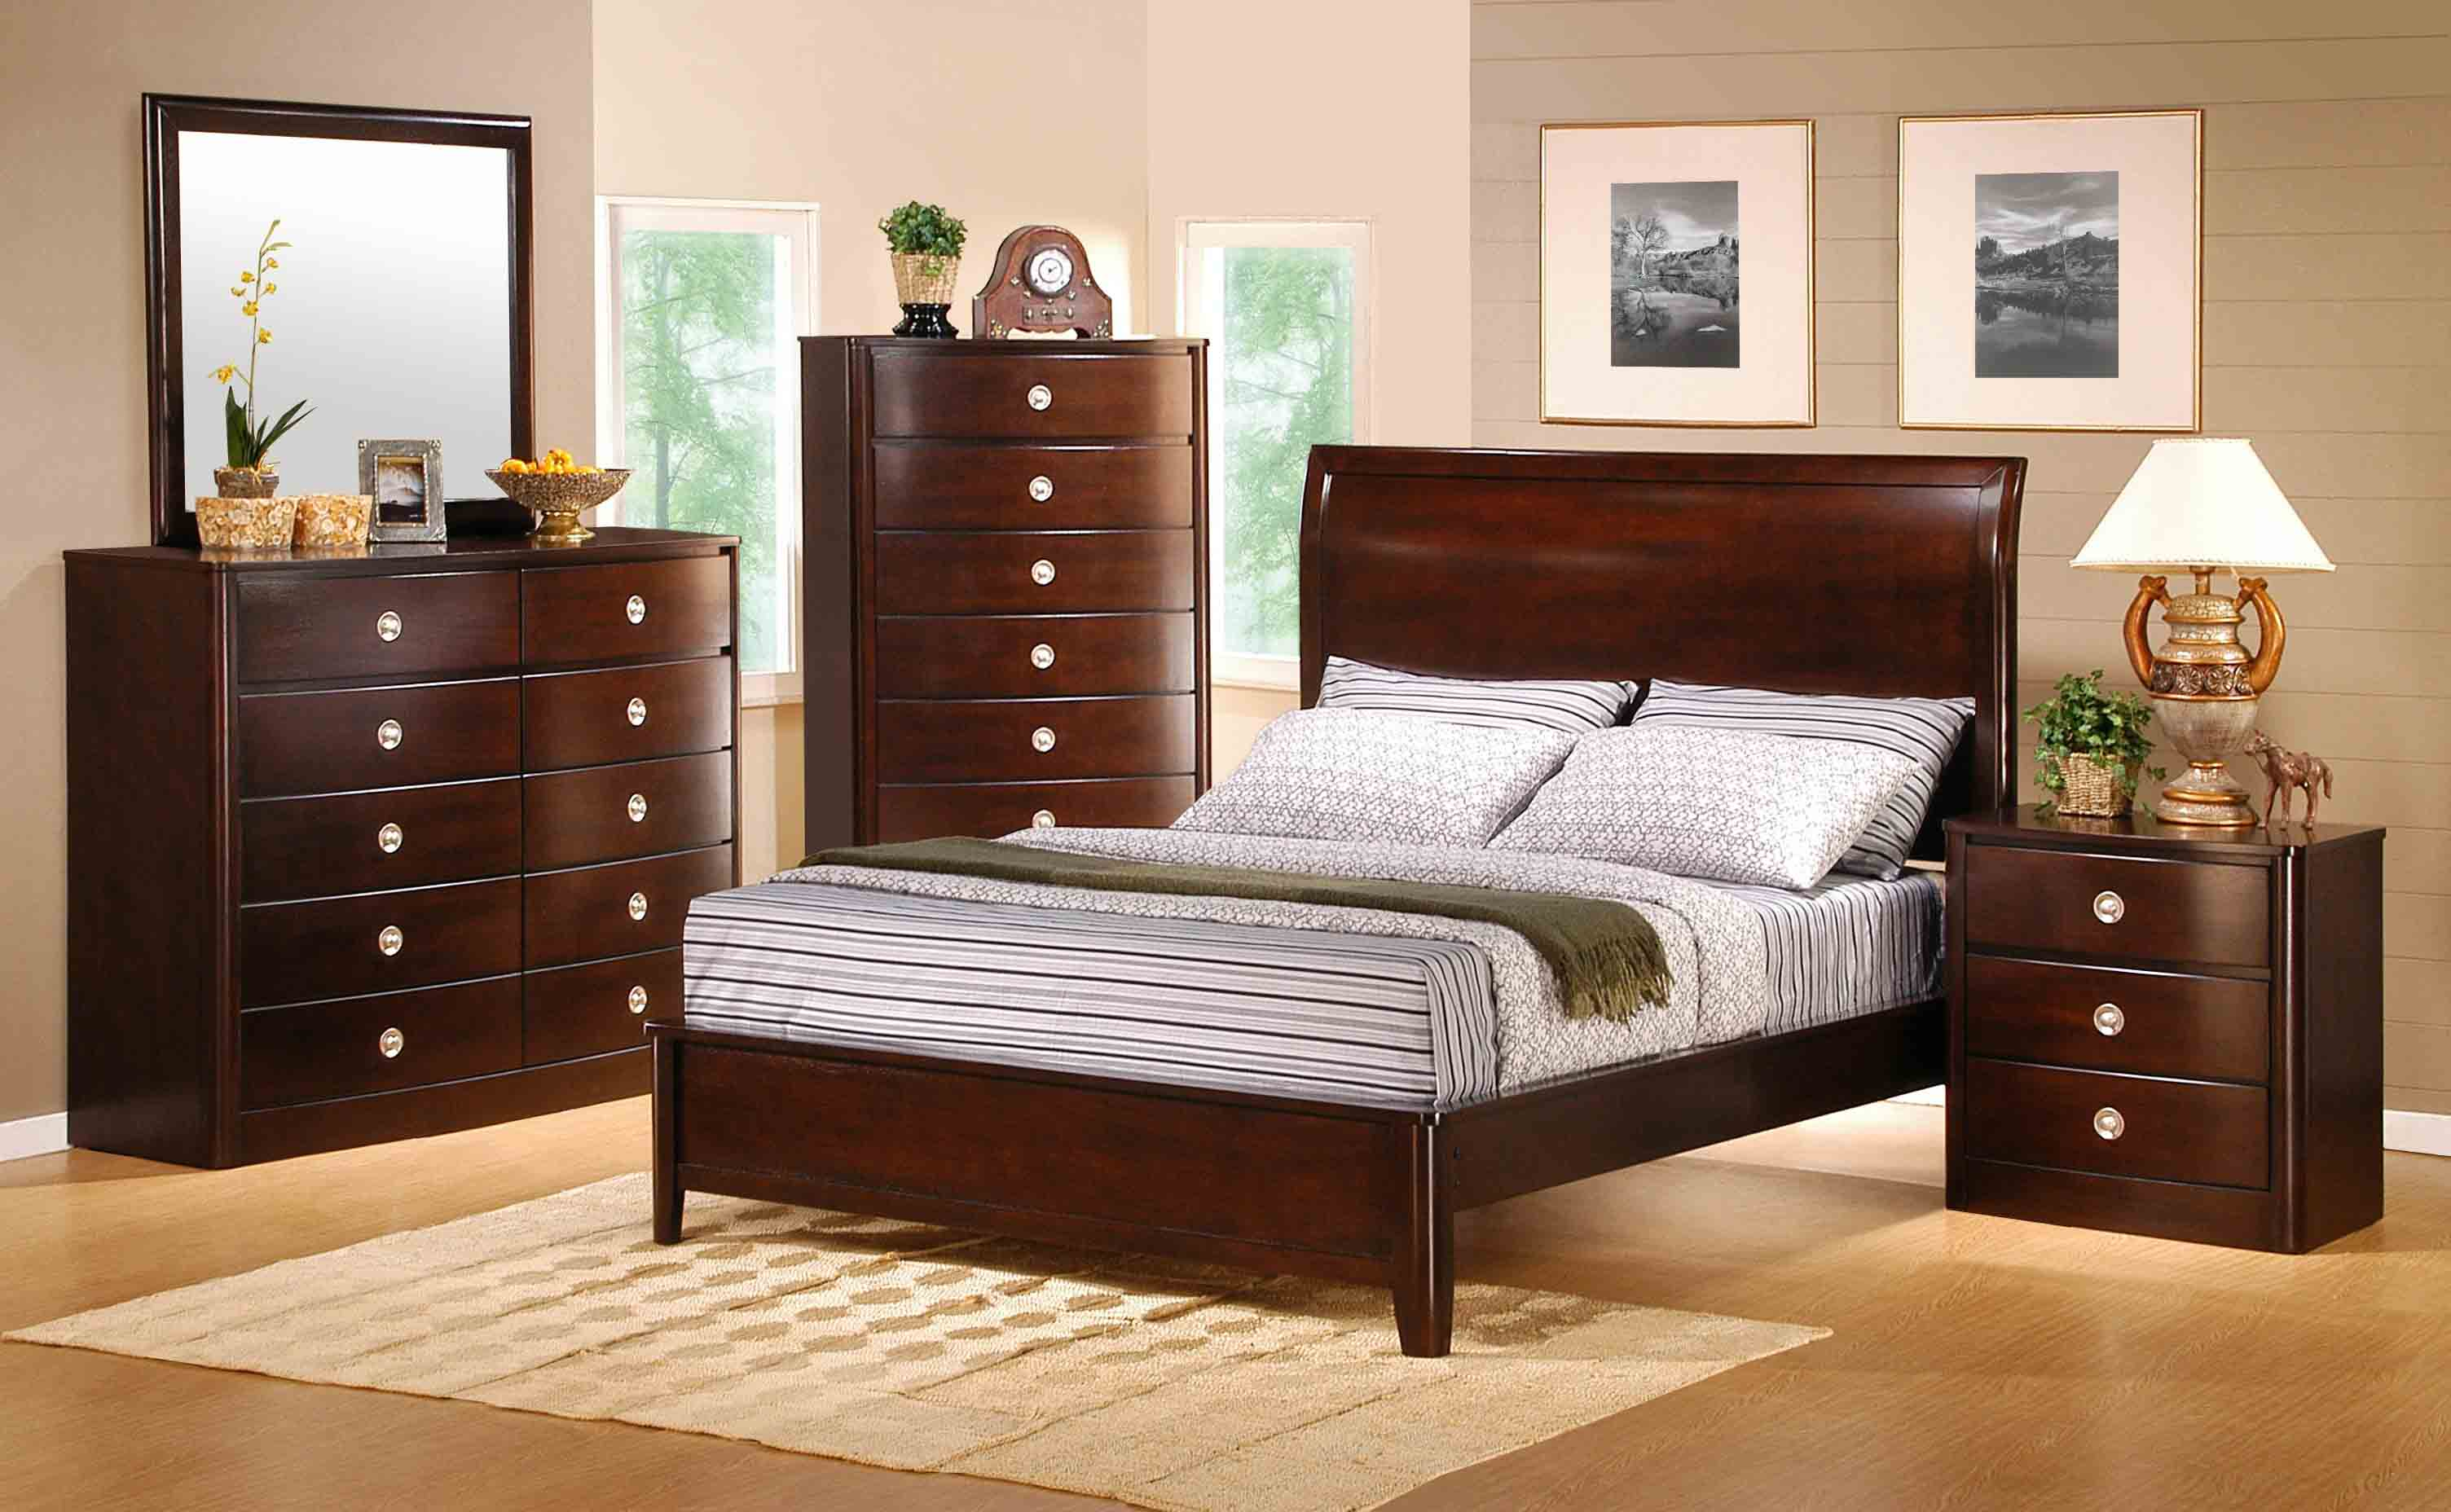 freya classic cherry finish wood bedroom set queen bed dresser